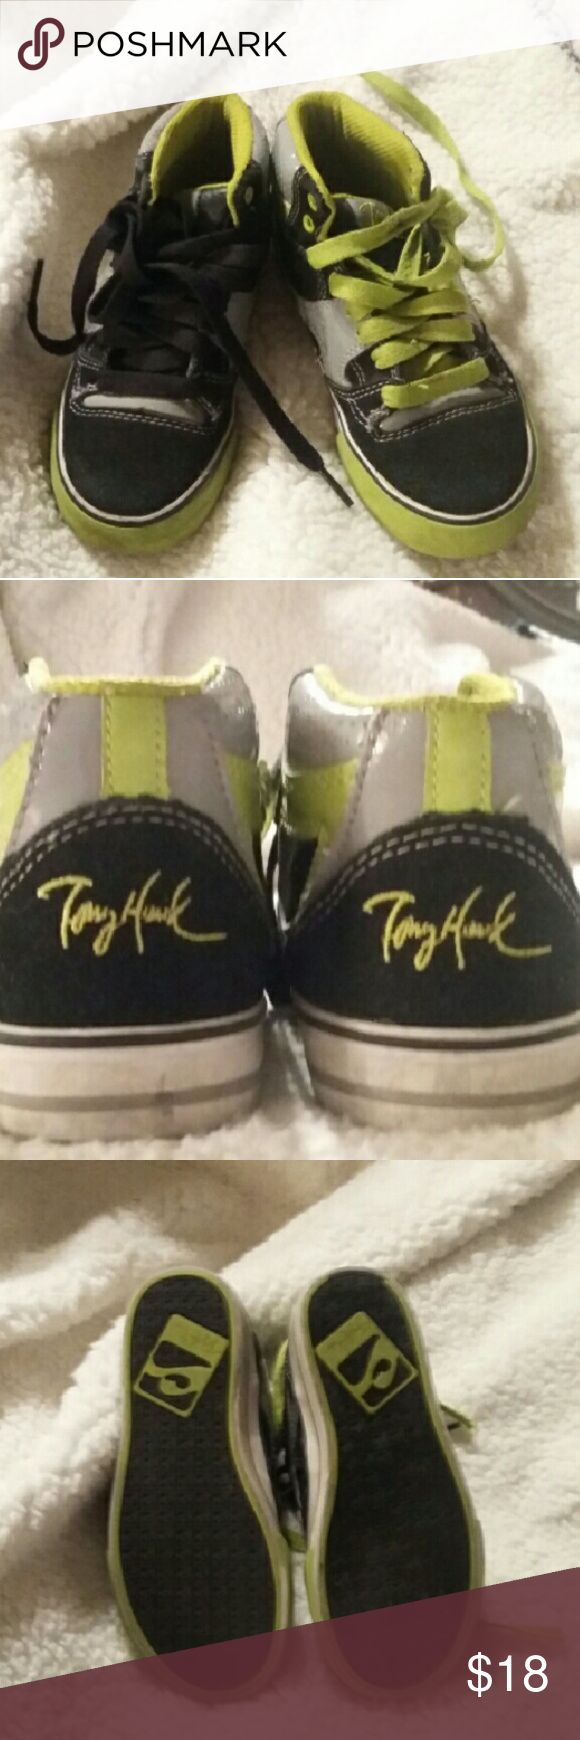 Tony Hawk Skate Boarding Shoes Tony Hawks Boys Skate Boarding Shoes in very good condition. Clean and ready to go down to the park! Tony Hawk Shoes Sneakers